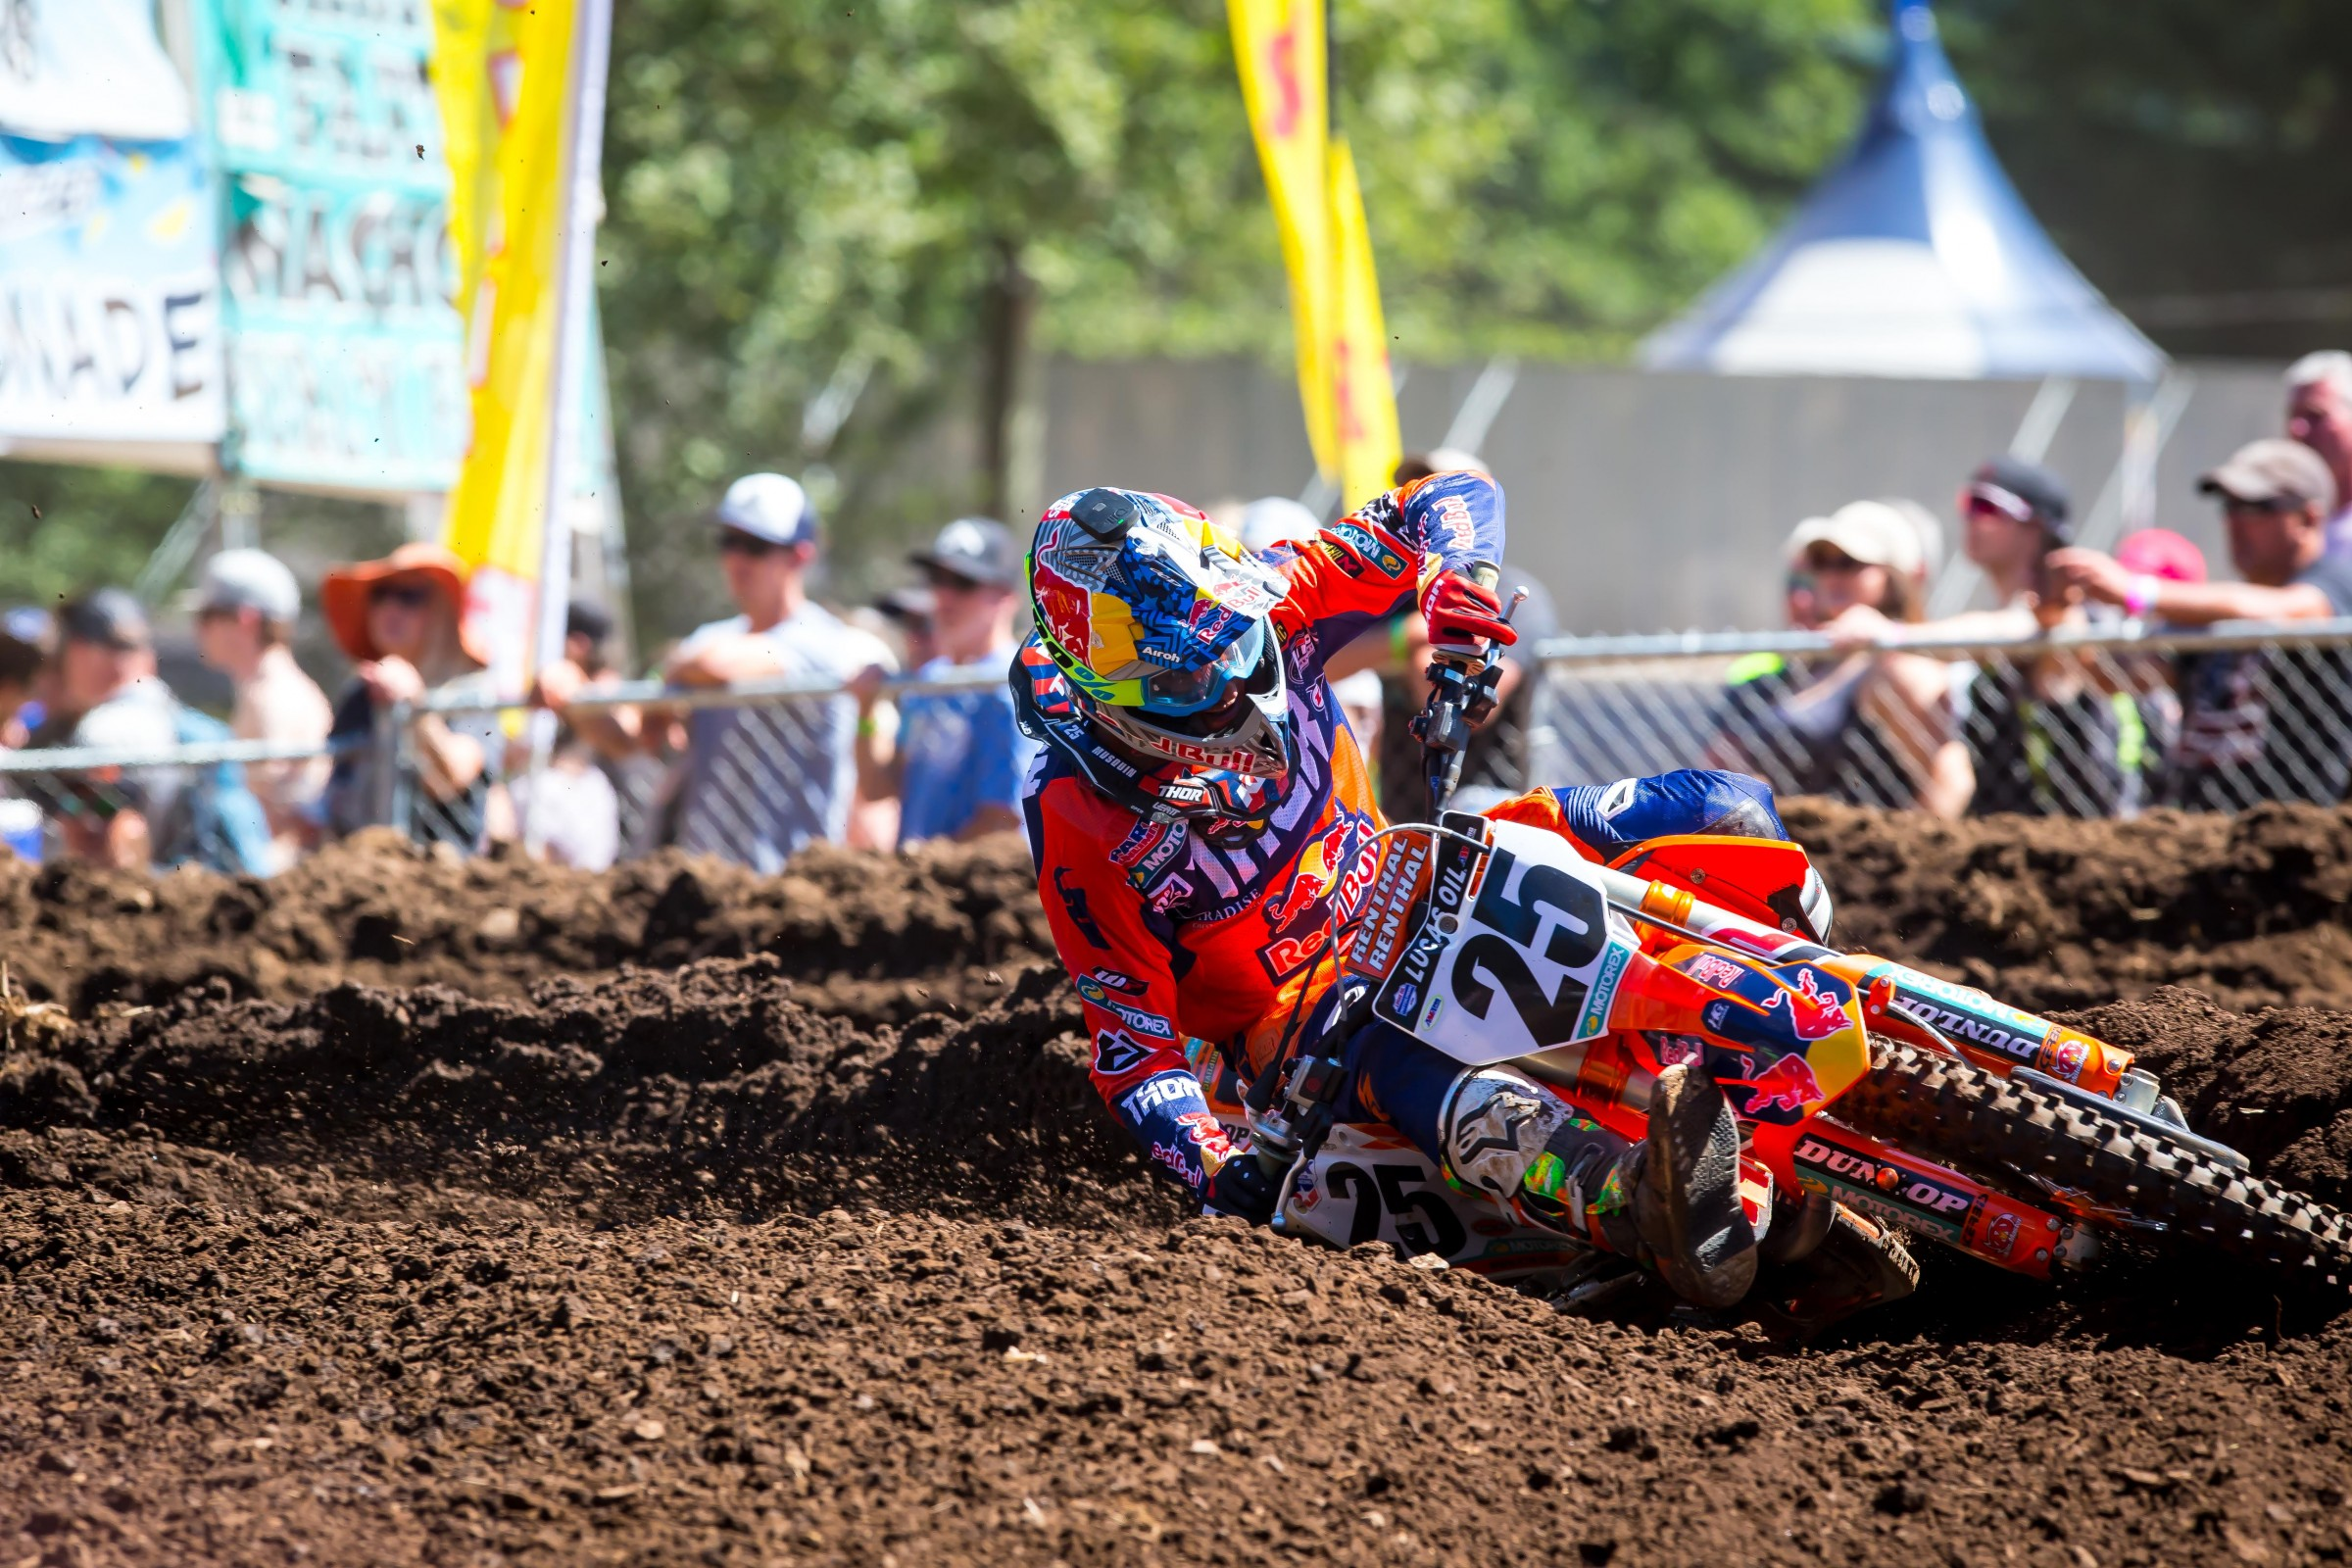 Musquin says his knee is no longer a problem and that we should think of it as an old injury now.